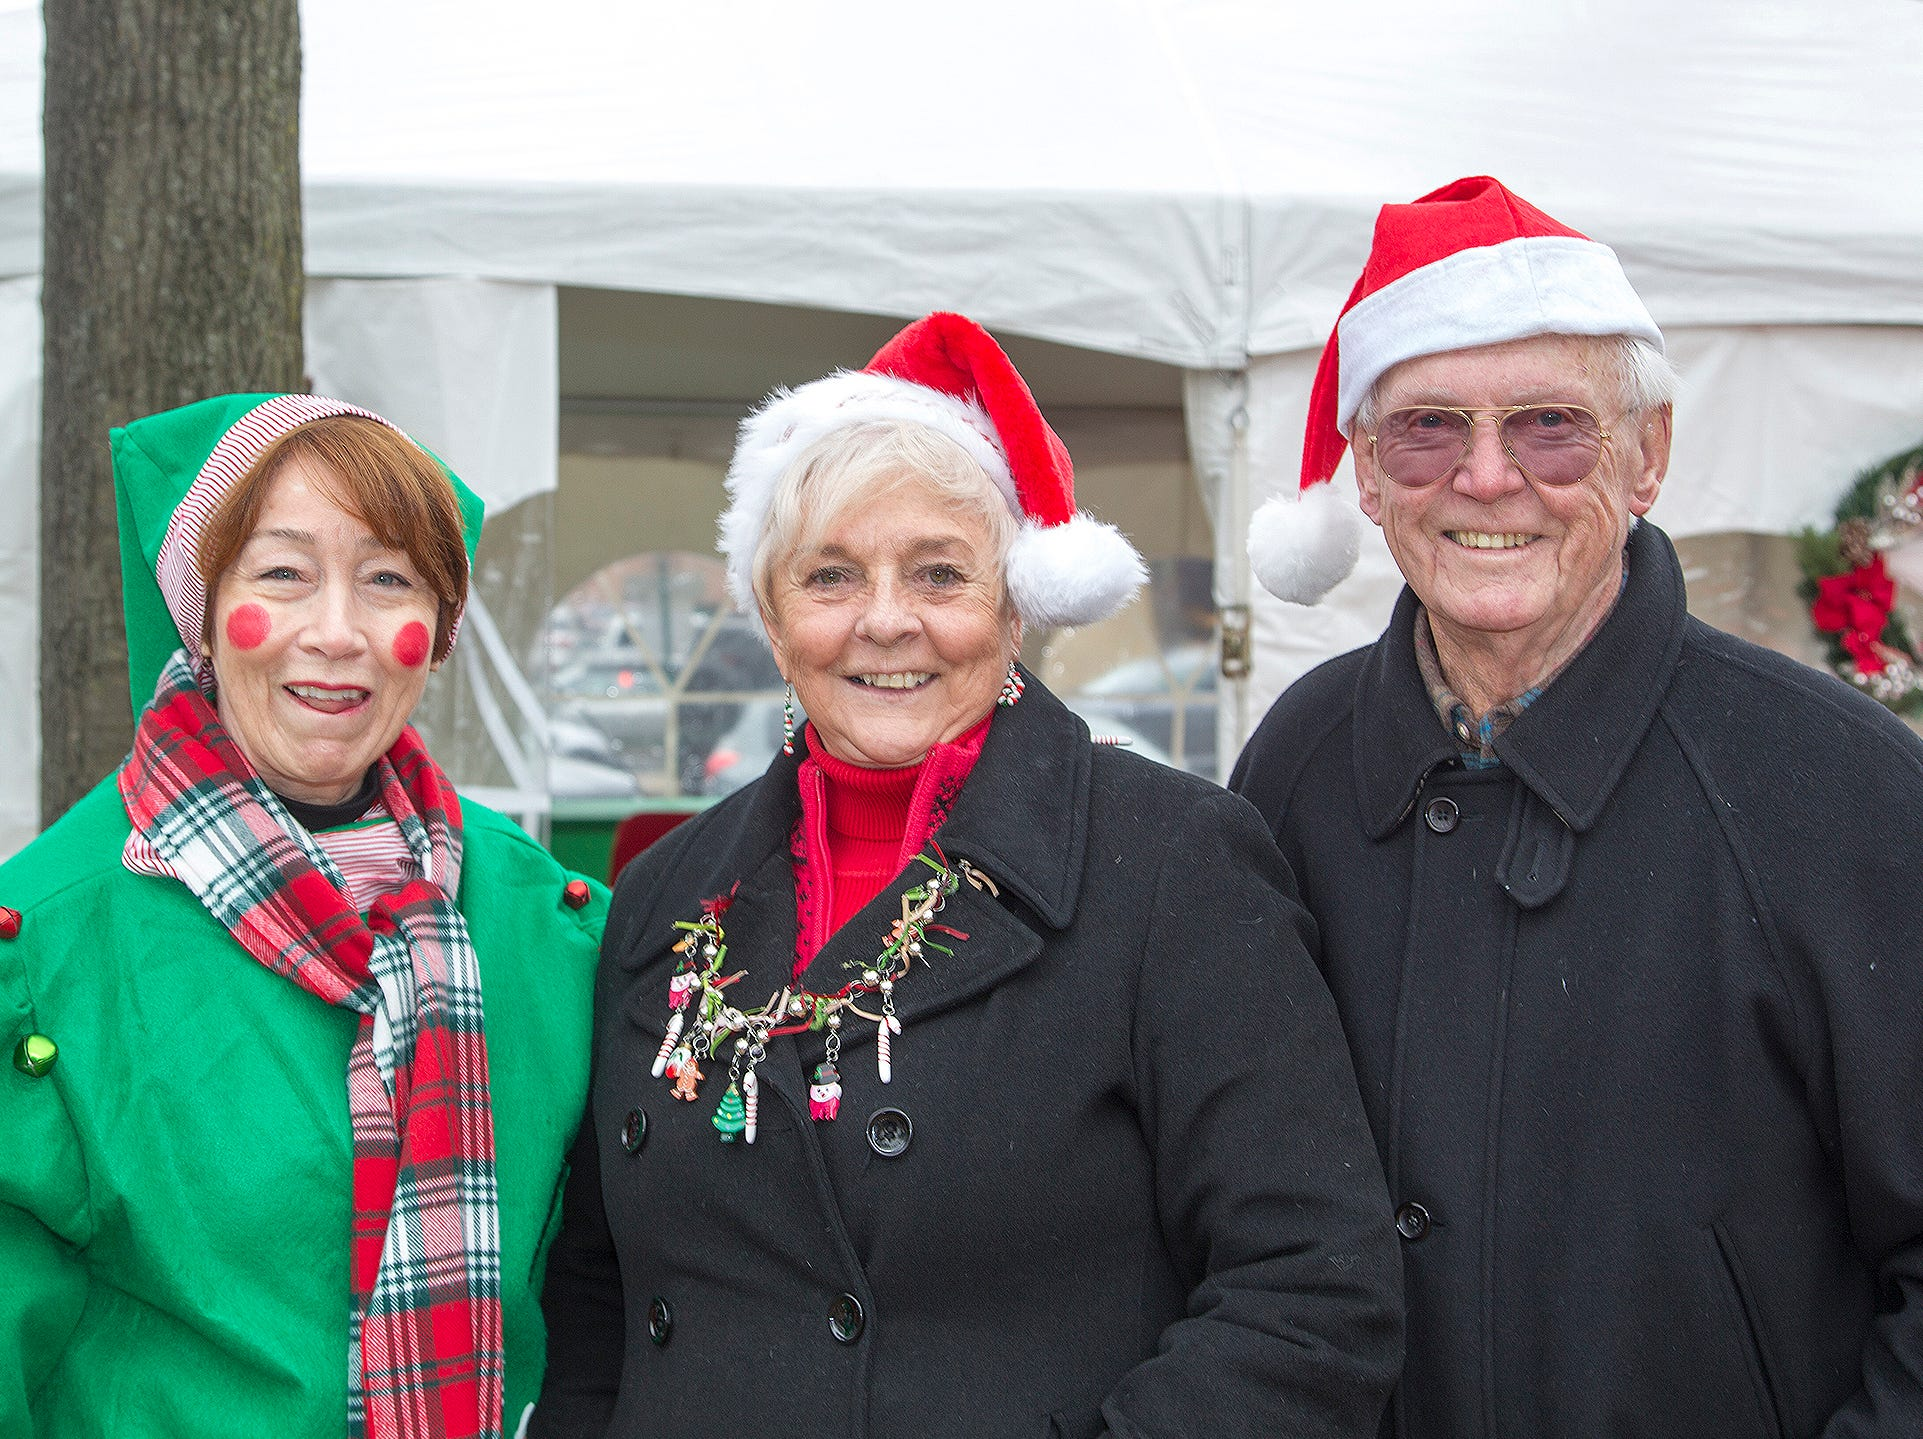 Jess Guliani with Pat and Tom Hanly. The Ridgewood Guild sponsors Winter Fest at Van Neste Park in Ridgewood. 11/24/2018